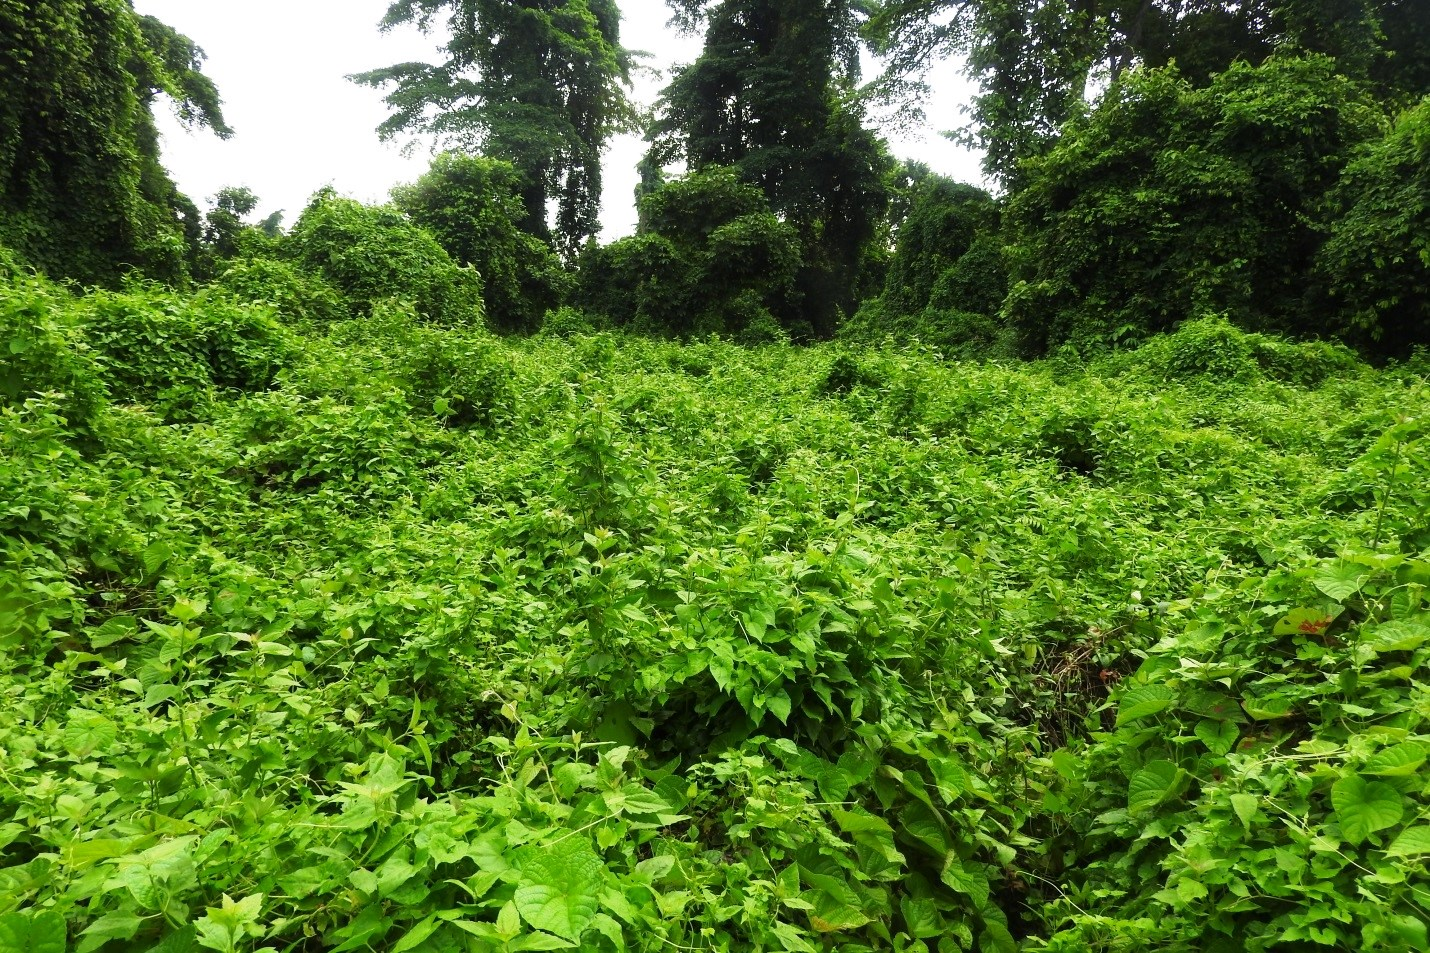 Walking through Jalthal forest: Exploring diversity, importance and degradation